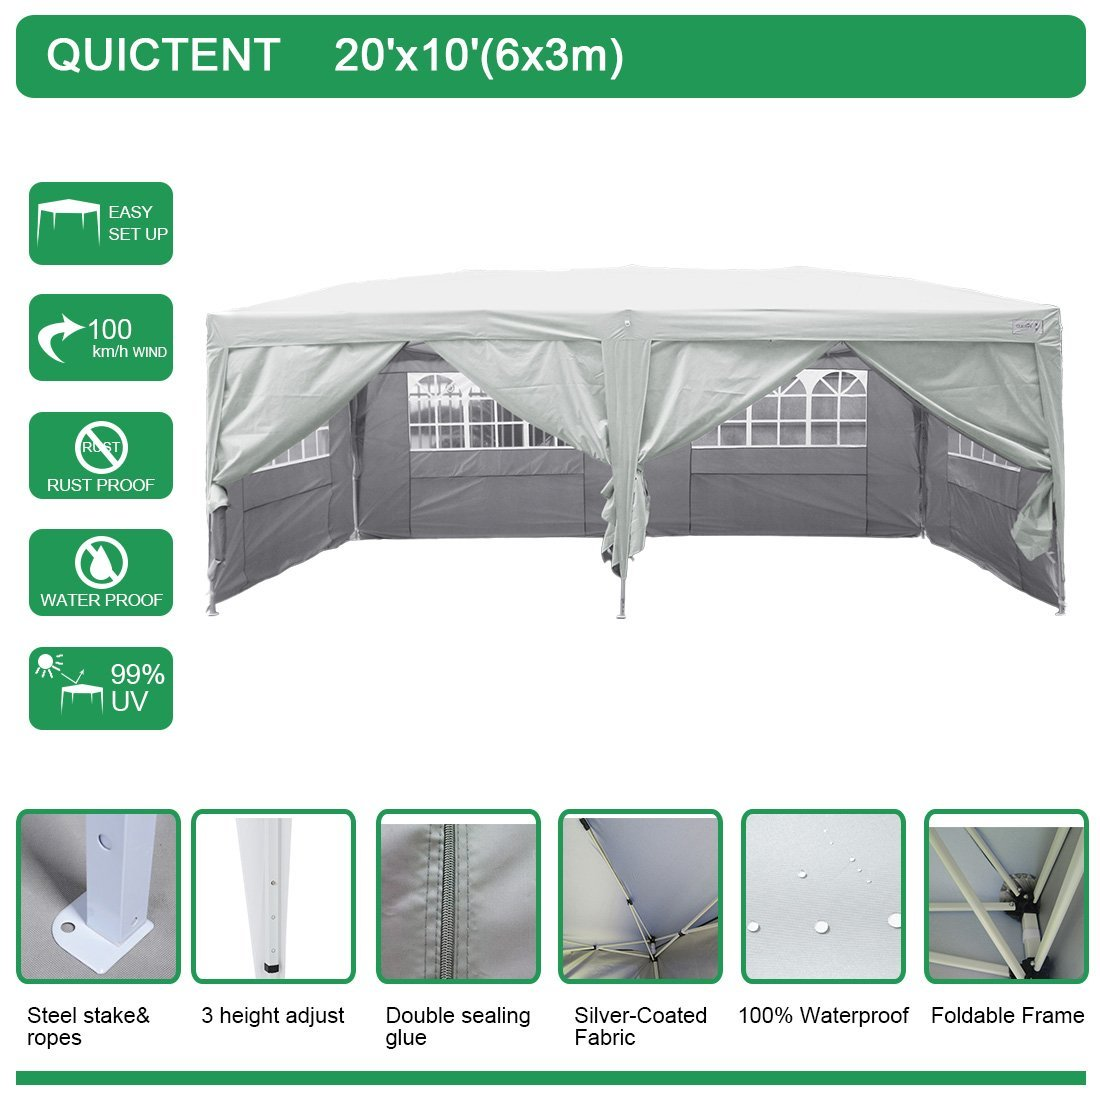 Quictent Silver Waterproof 20x10u0027 EZ Pop Up Canopy Commer.  sc 1 st  Nextag & Waterproof pop up canopy tent | Outdoor Structures | Compare ...